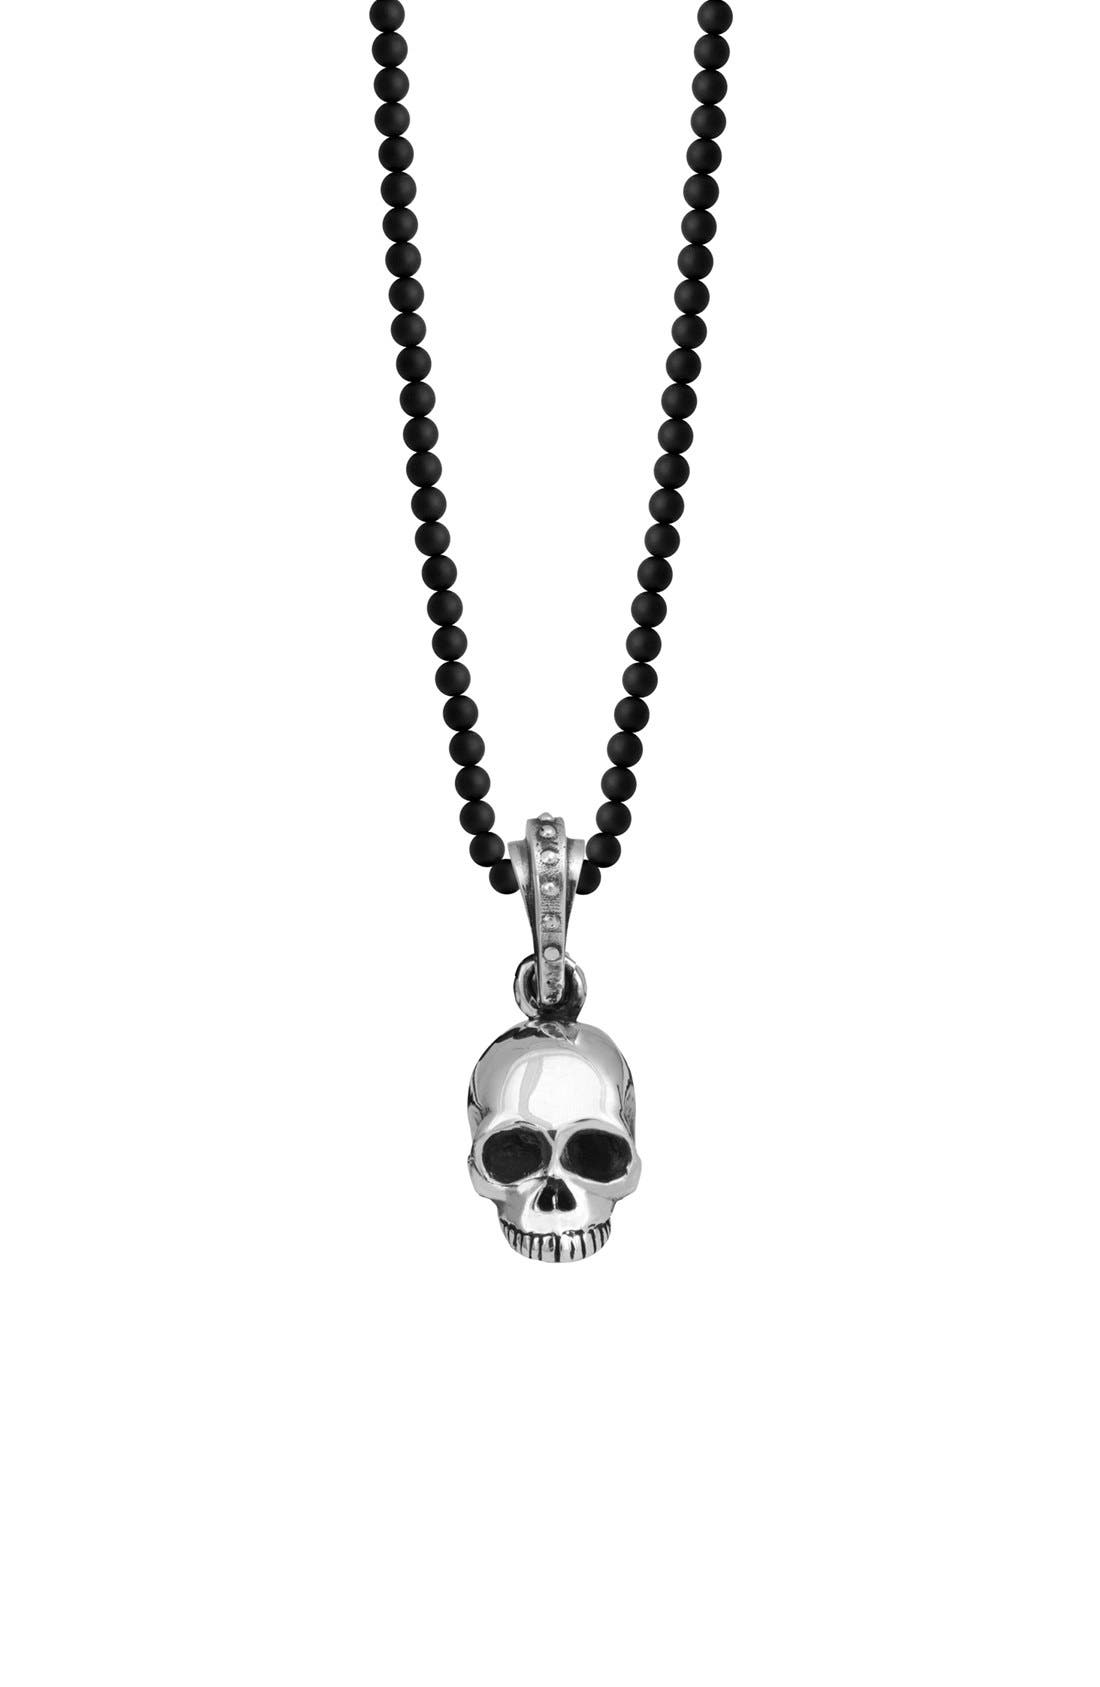 'Hamlet' Sterling Silver & Onyx Skull Pendant Necklace,                             Main thumbnail 1, color,                             004